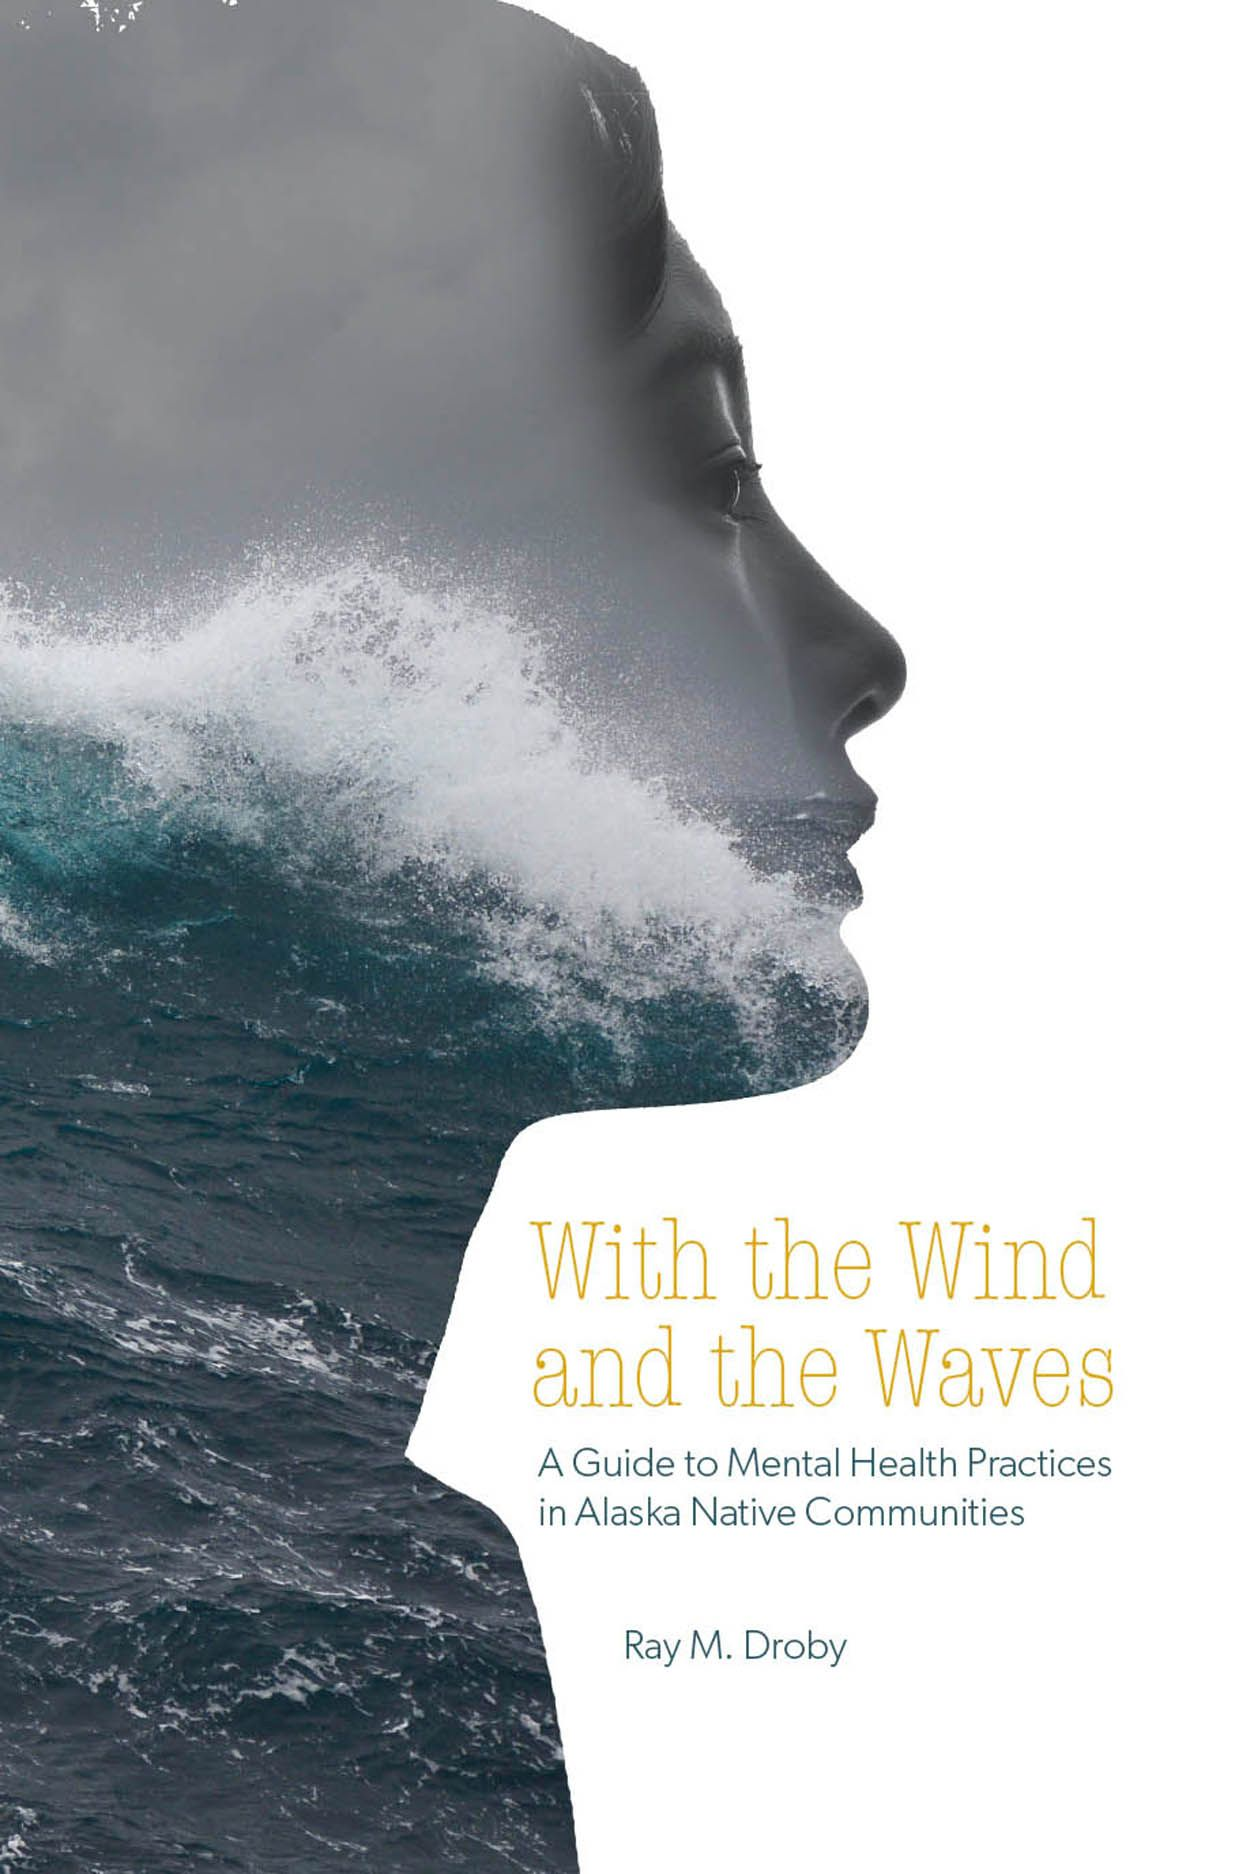 With the Wind and the Waves: A Guide to Mental Health Practices in Alaska Native Communities